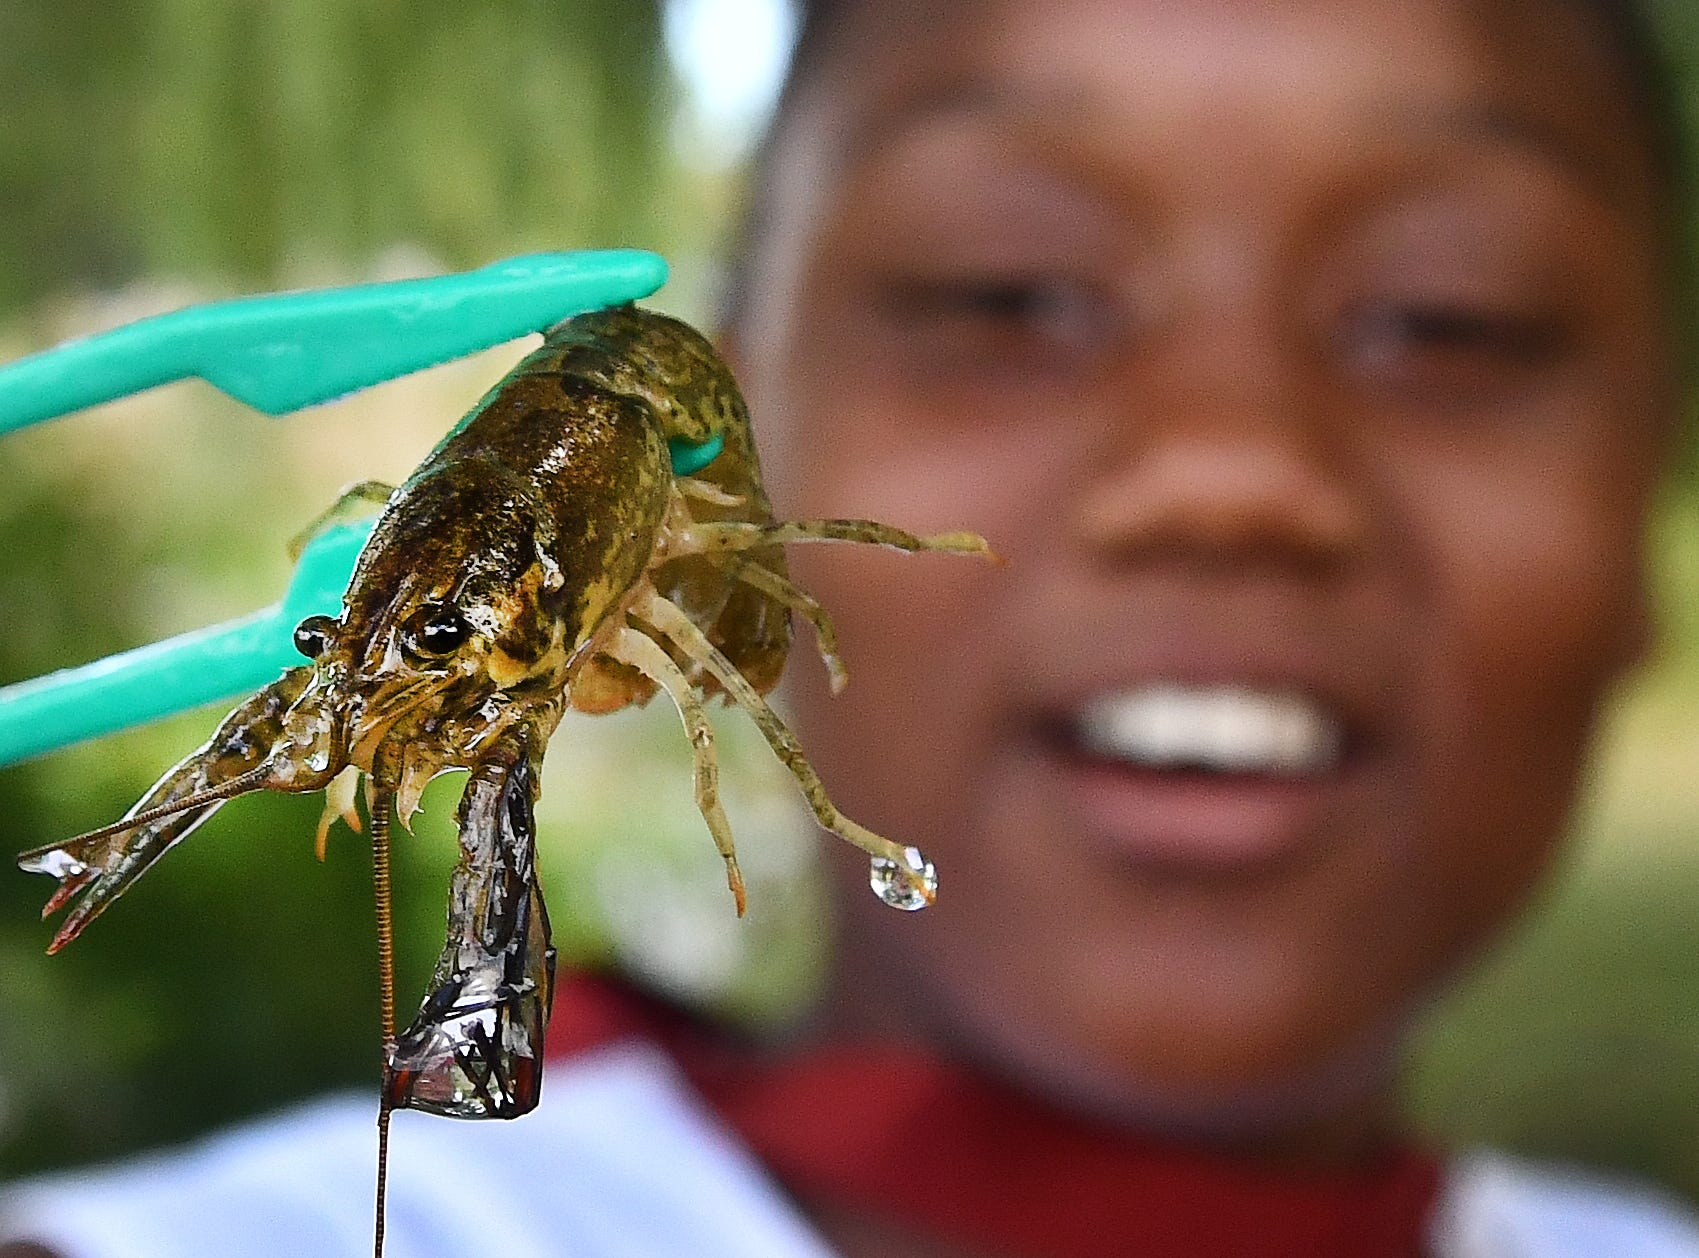 Dallas Forest, 11, proudly holds up a crayfish she netted from Lake Muskoday on Belle Isle before releasing it. Detroit Latin School's Socrates in the Summer program included a field trip to the Belle Isle Nature Center on July 17, 2018.